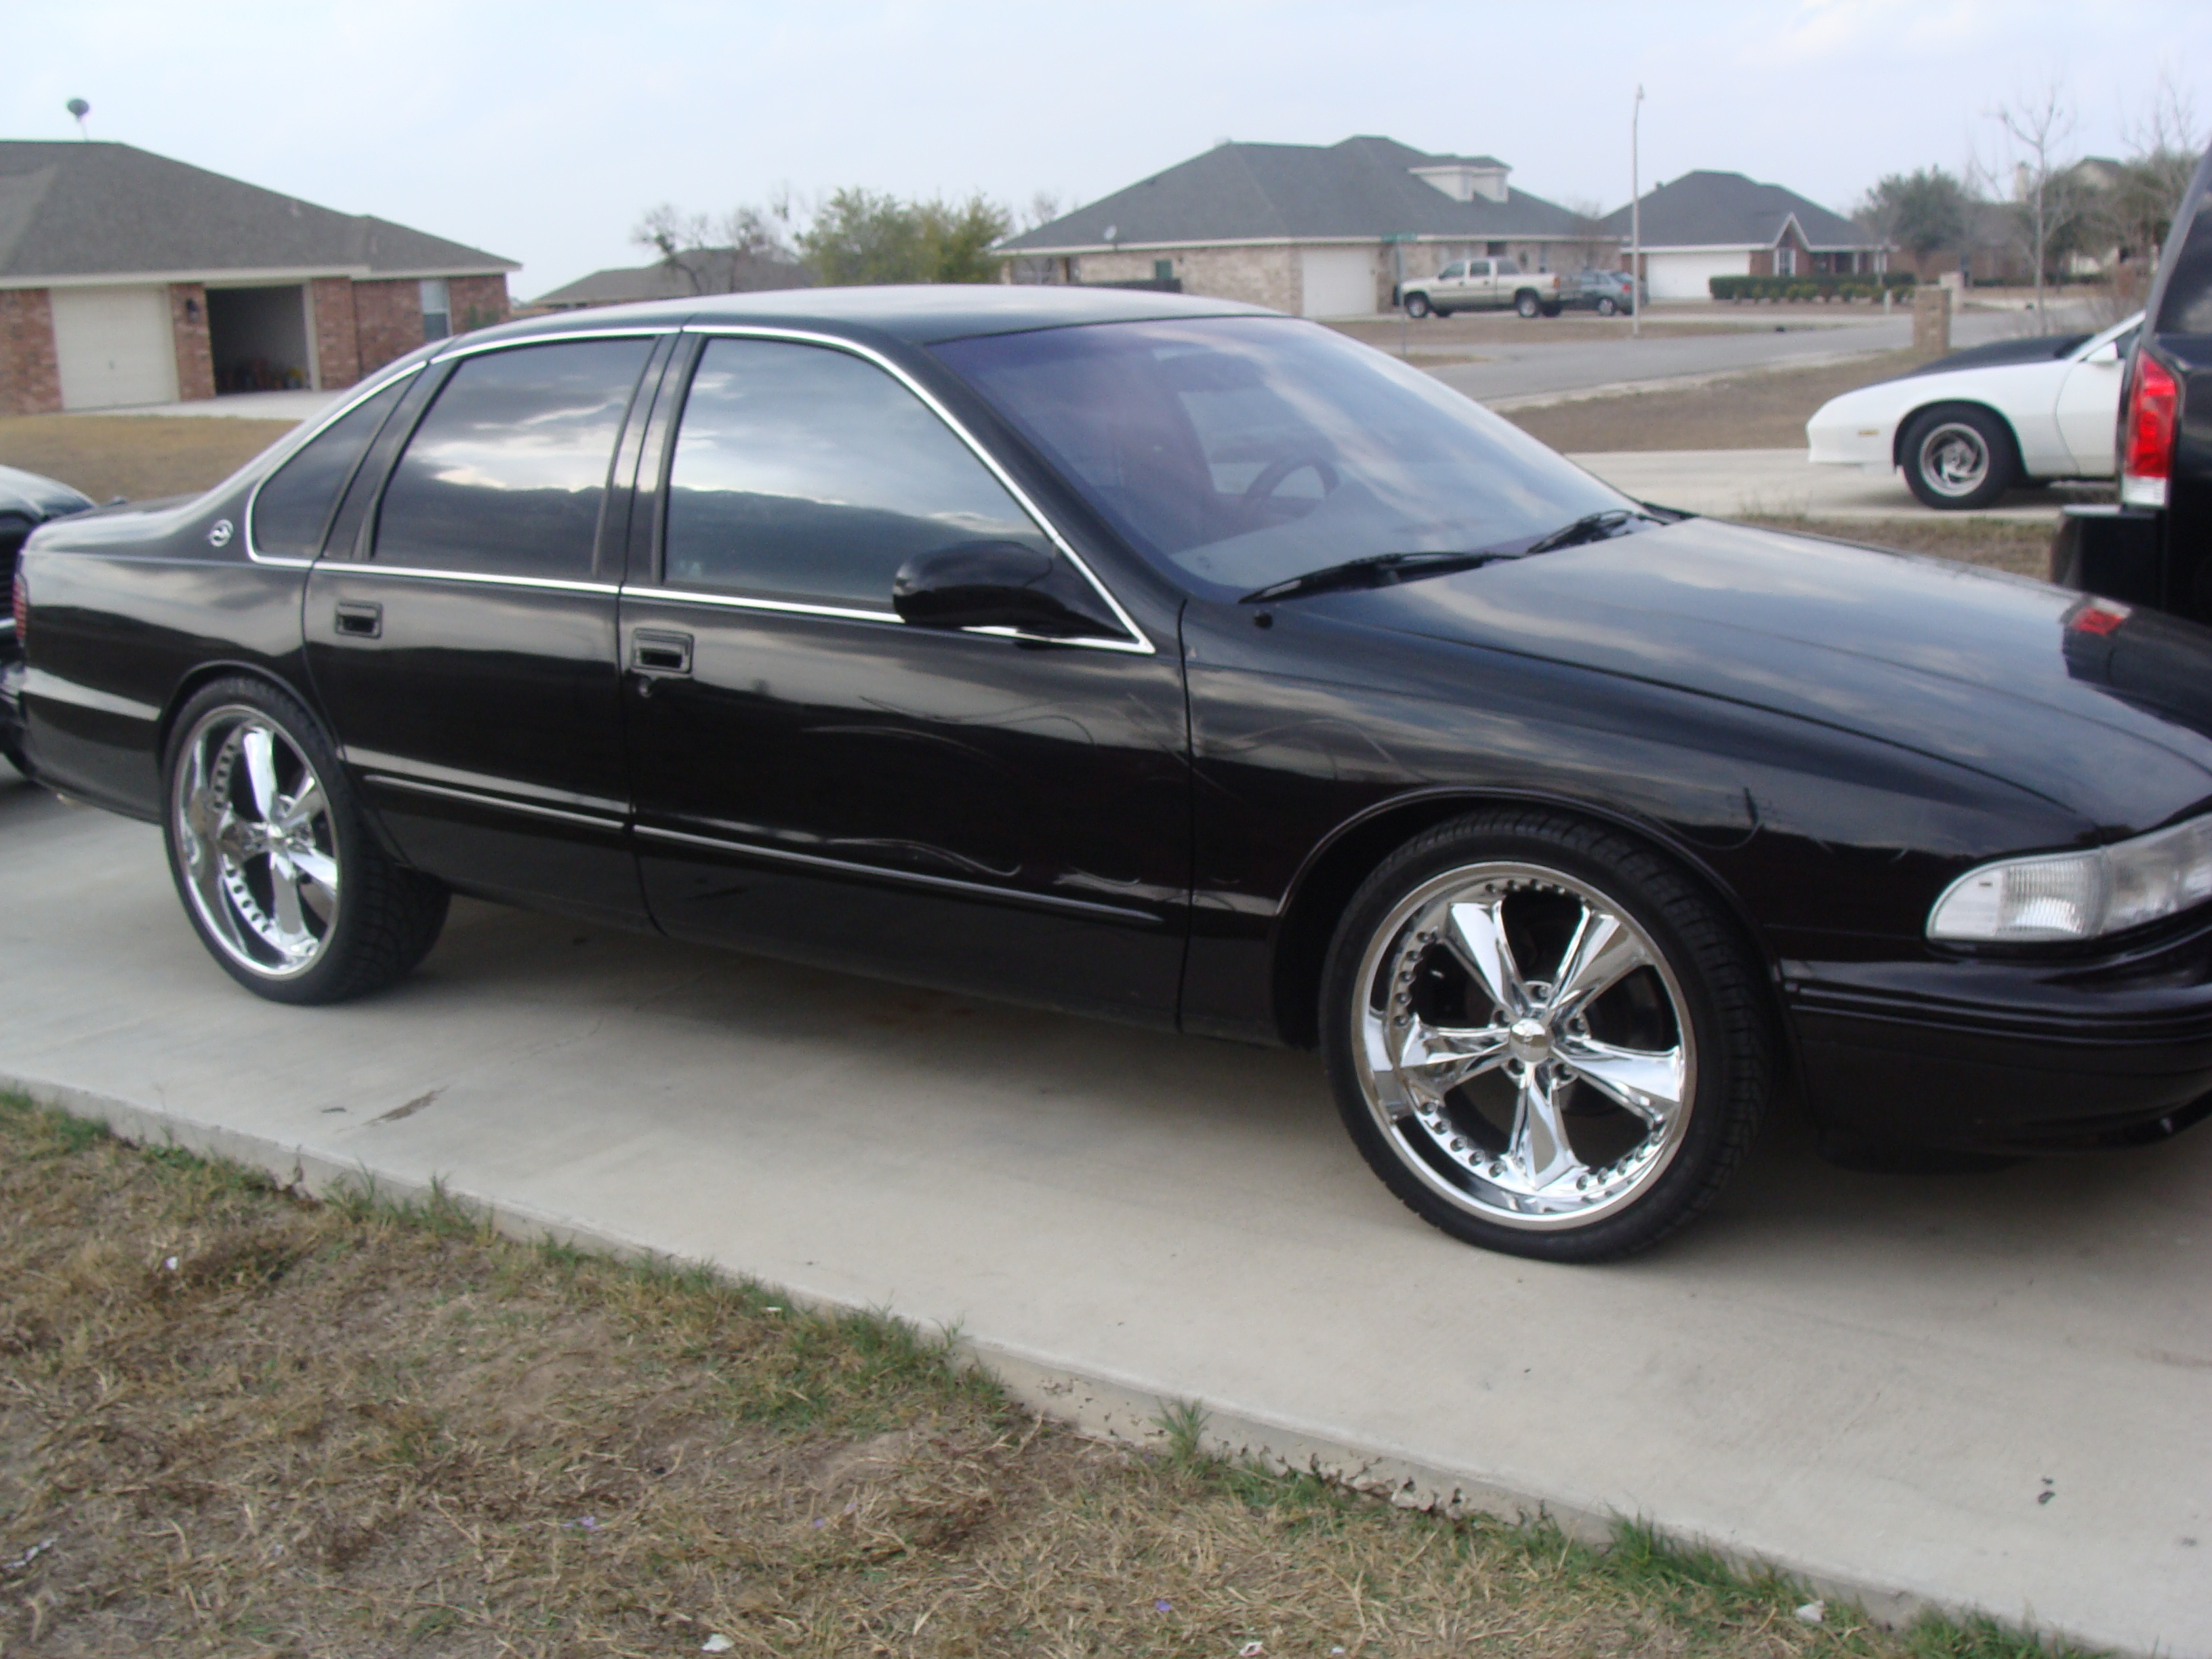 2008 Chevy Impala Specs - carreviewsandreleasedate.com ...